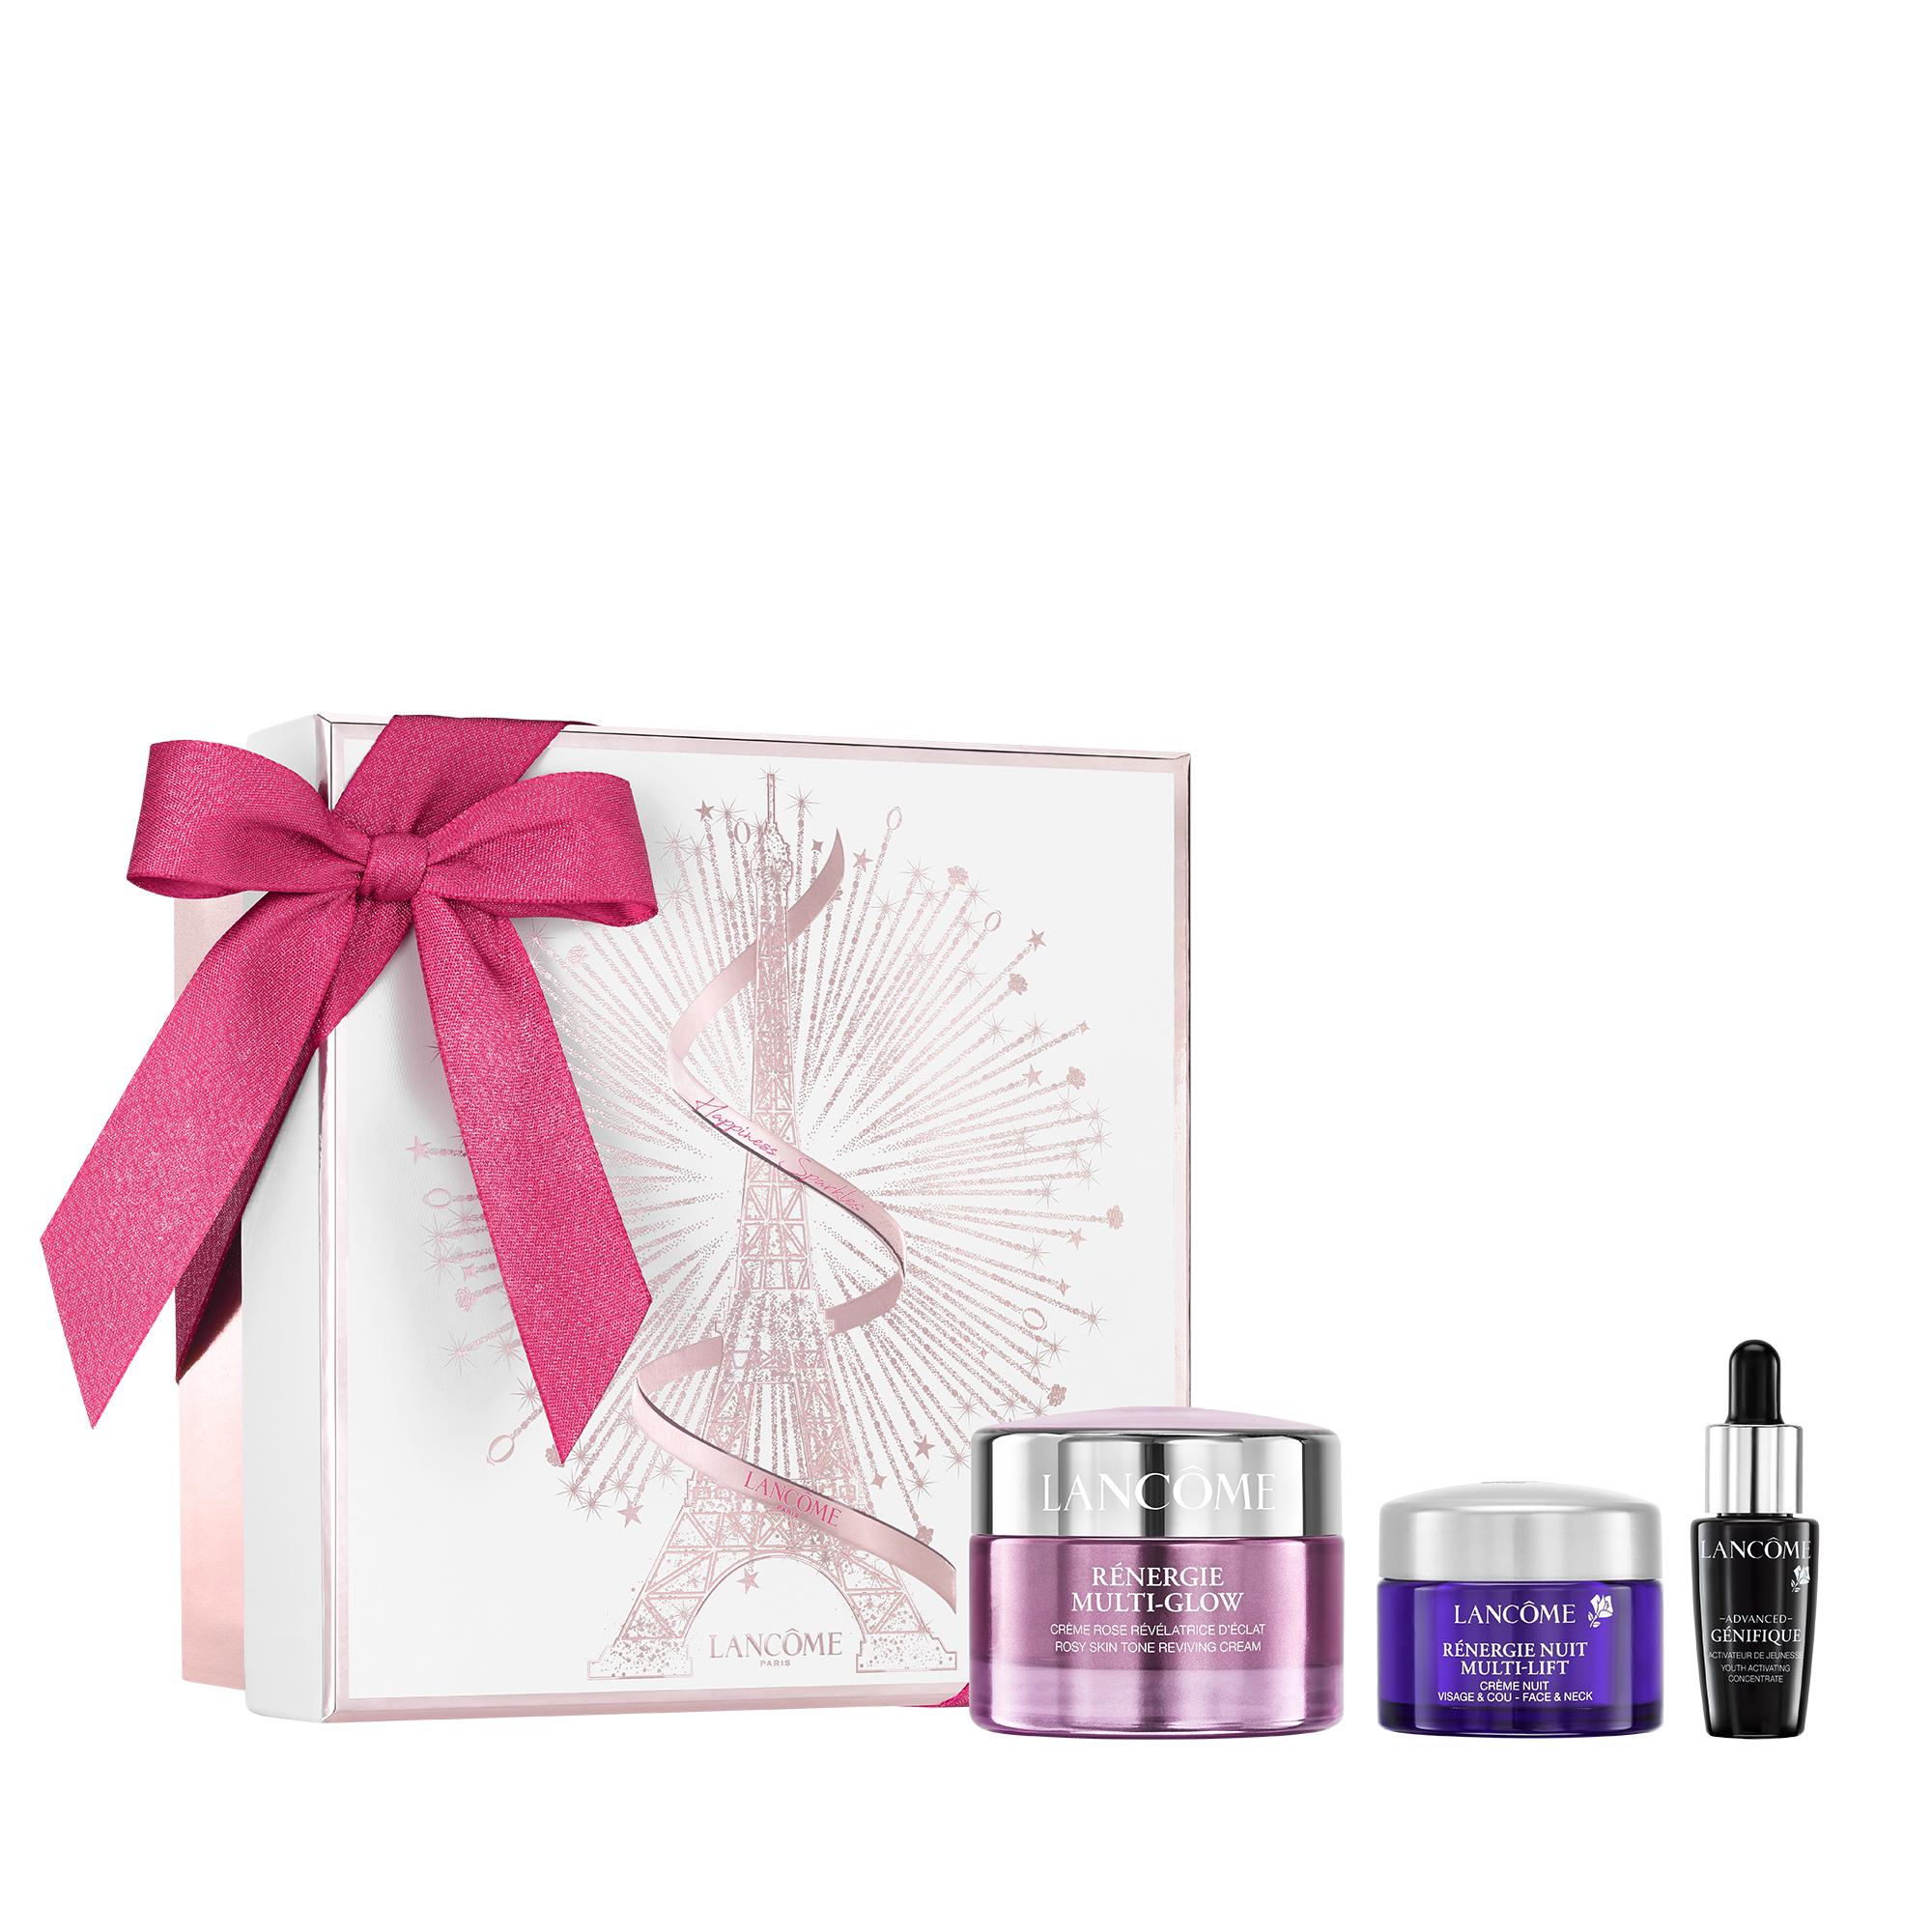 Prestige Set Renergie Rosy Glow Giftbox